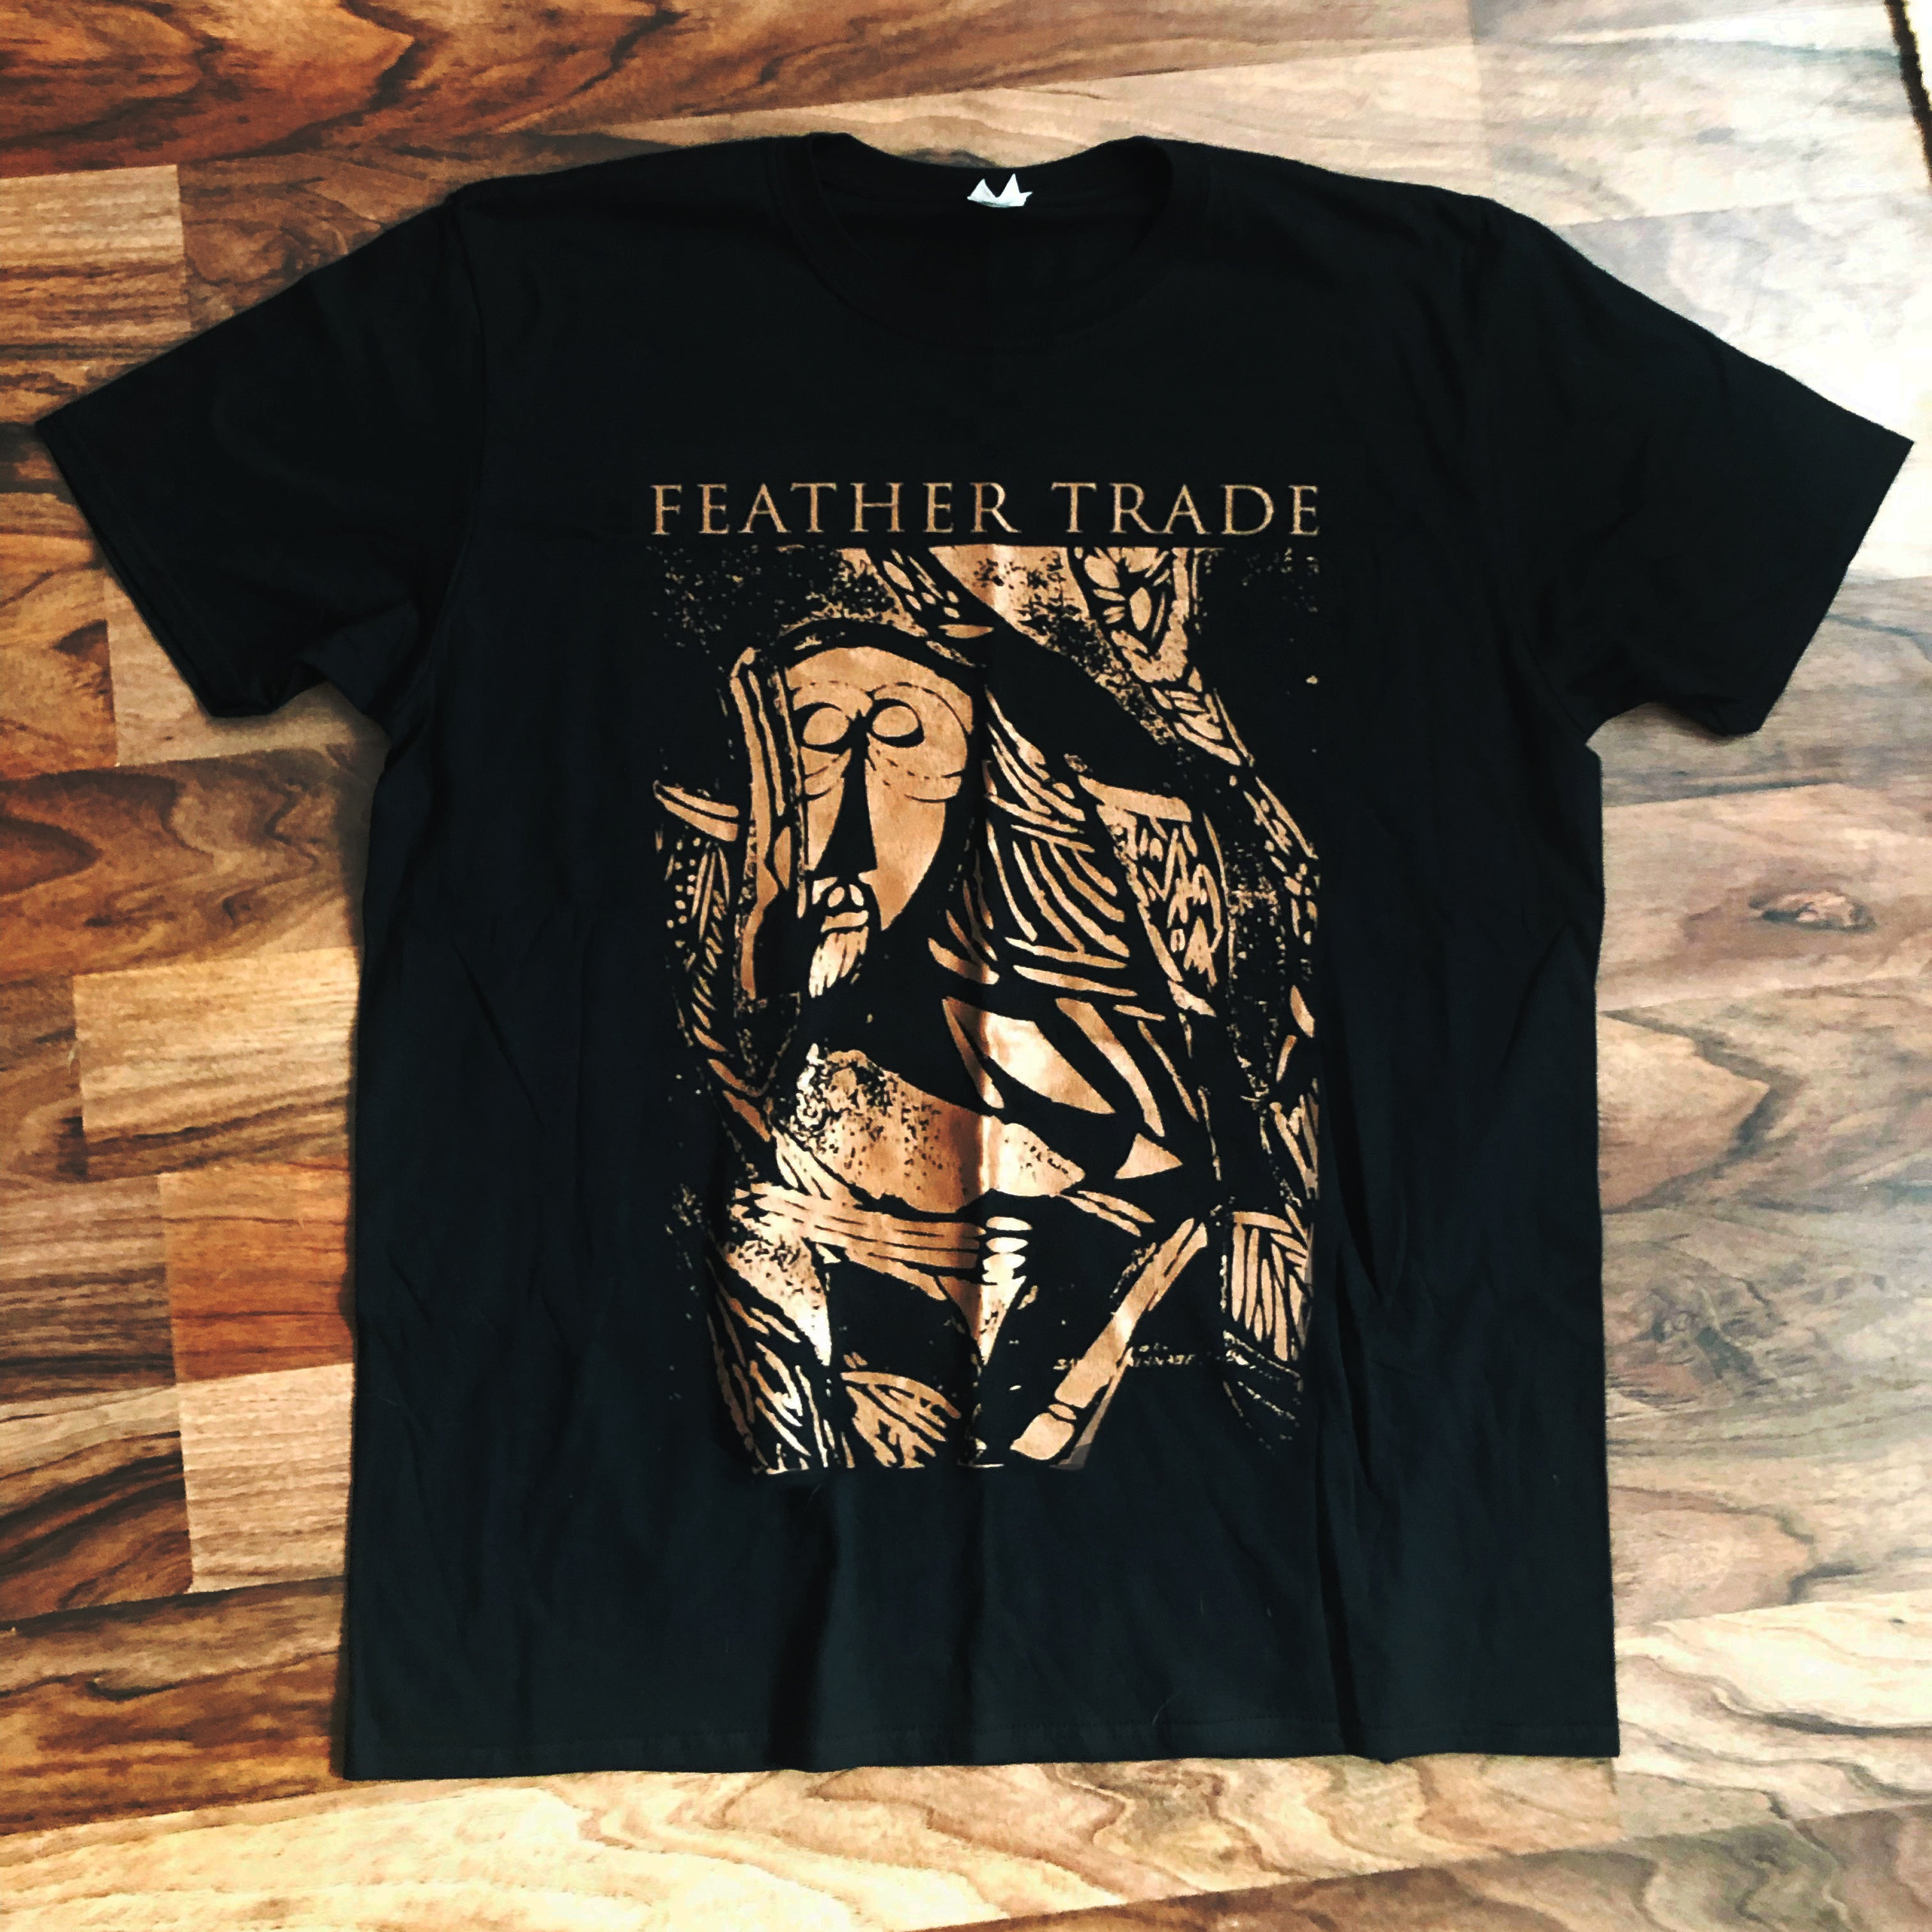 FEATHER TRADE TEE SHIRT